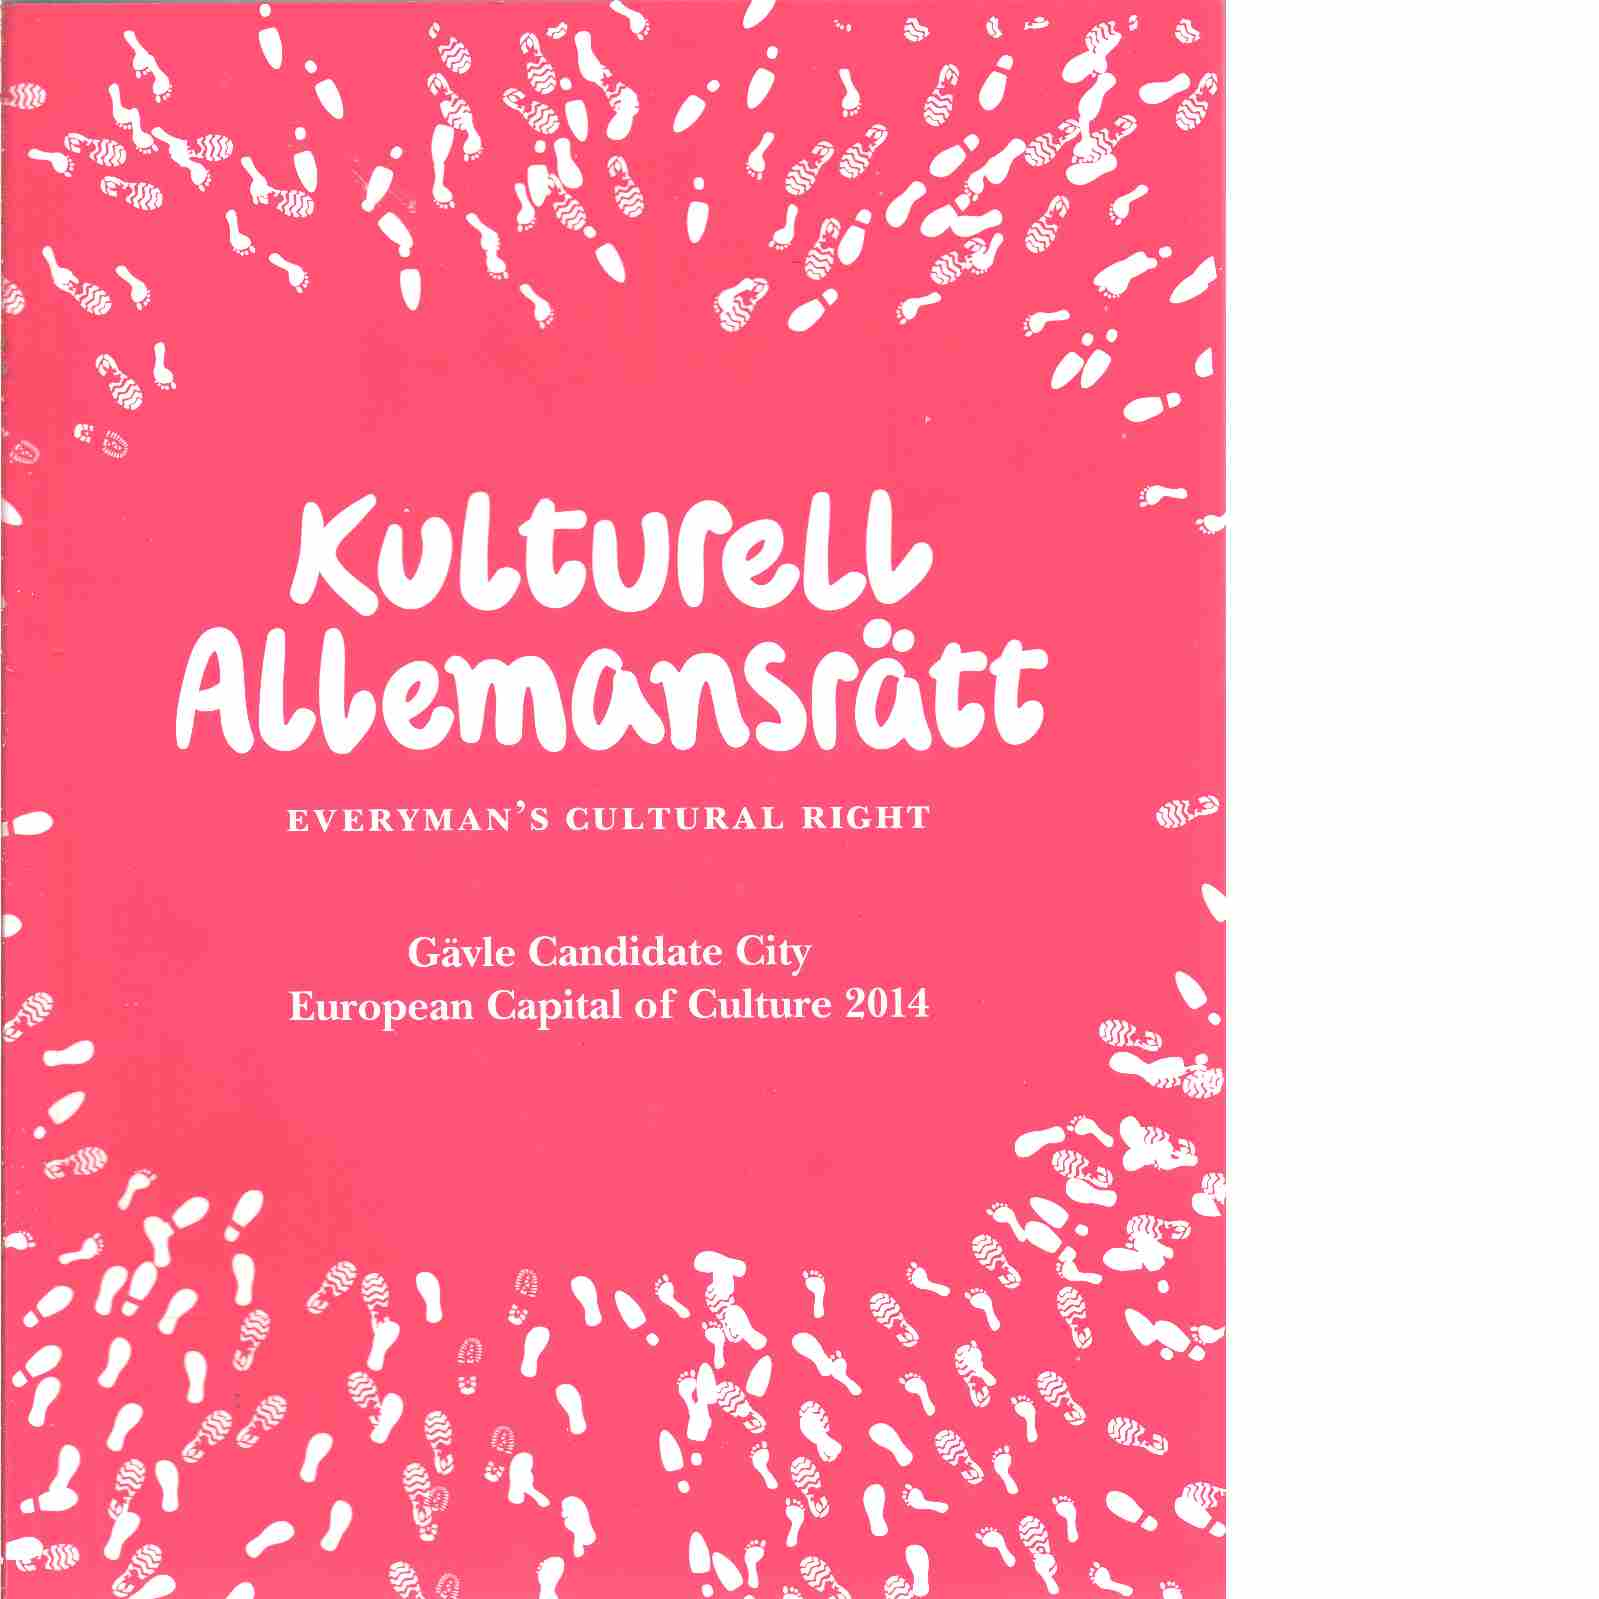 Kulturell allemansrätt - Everyman's Cultural Right : Gävle Candidate City : European Capital of Culture 2014  - Red. Åström, Kenneth